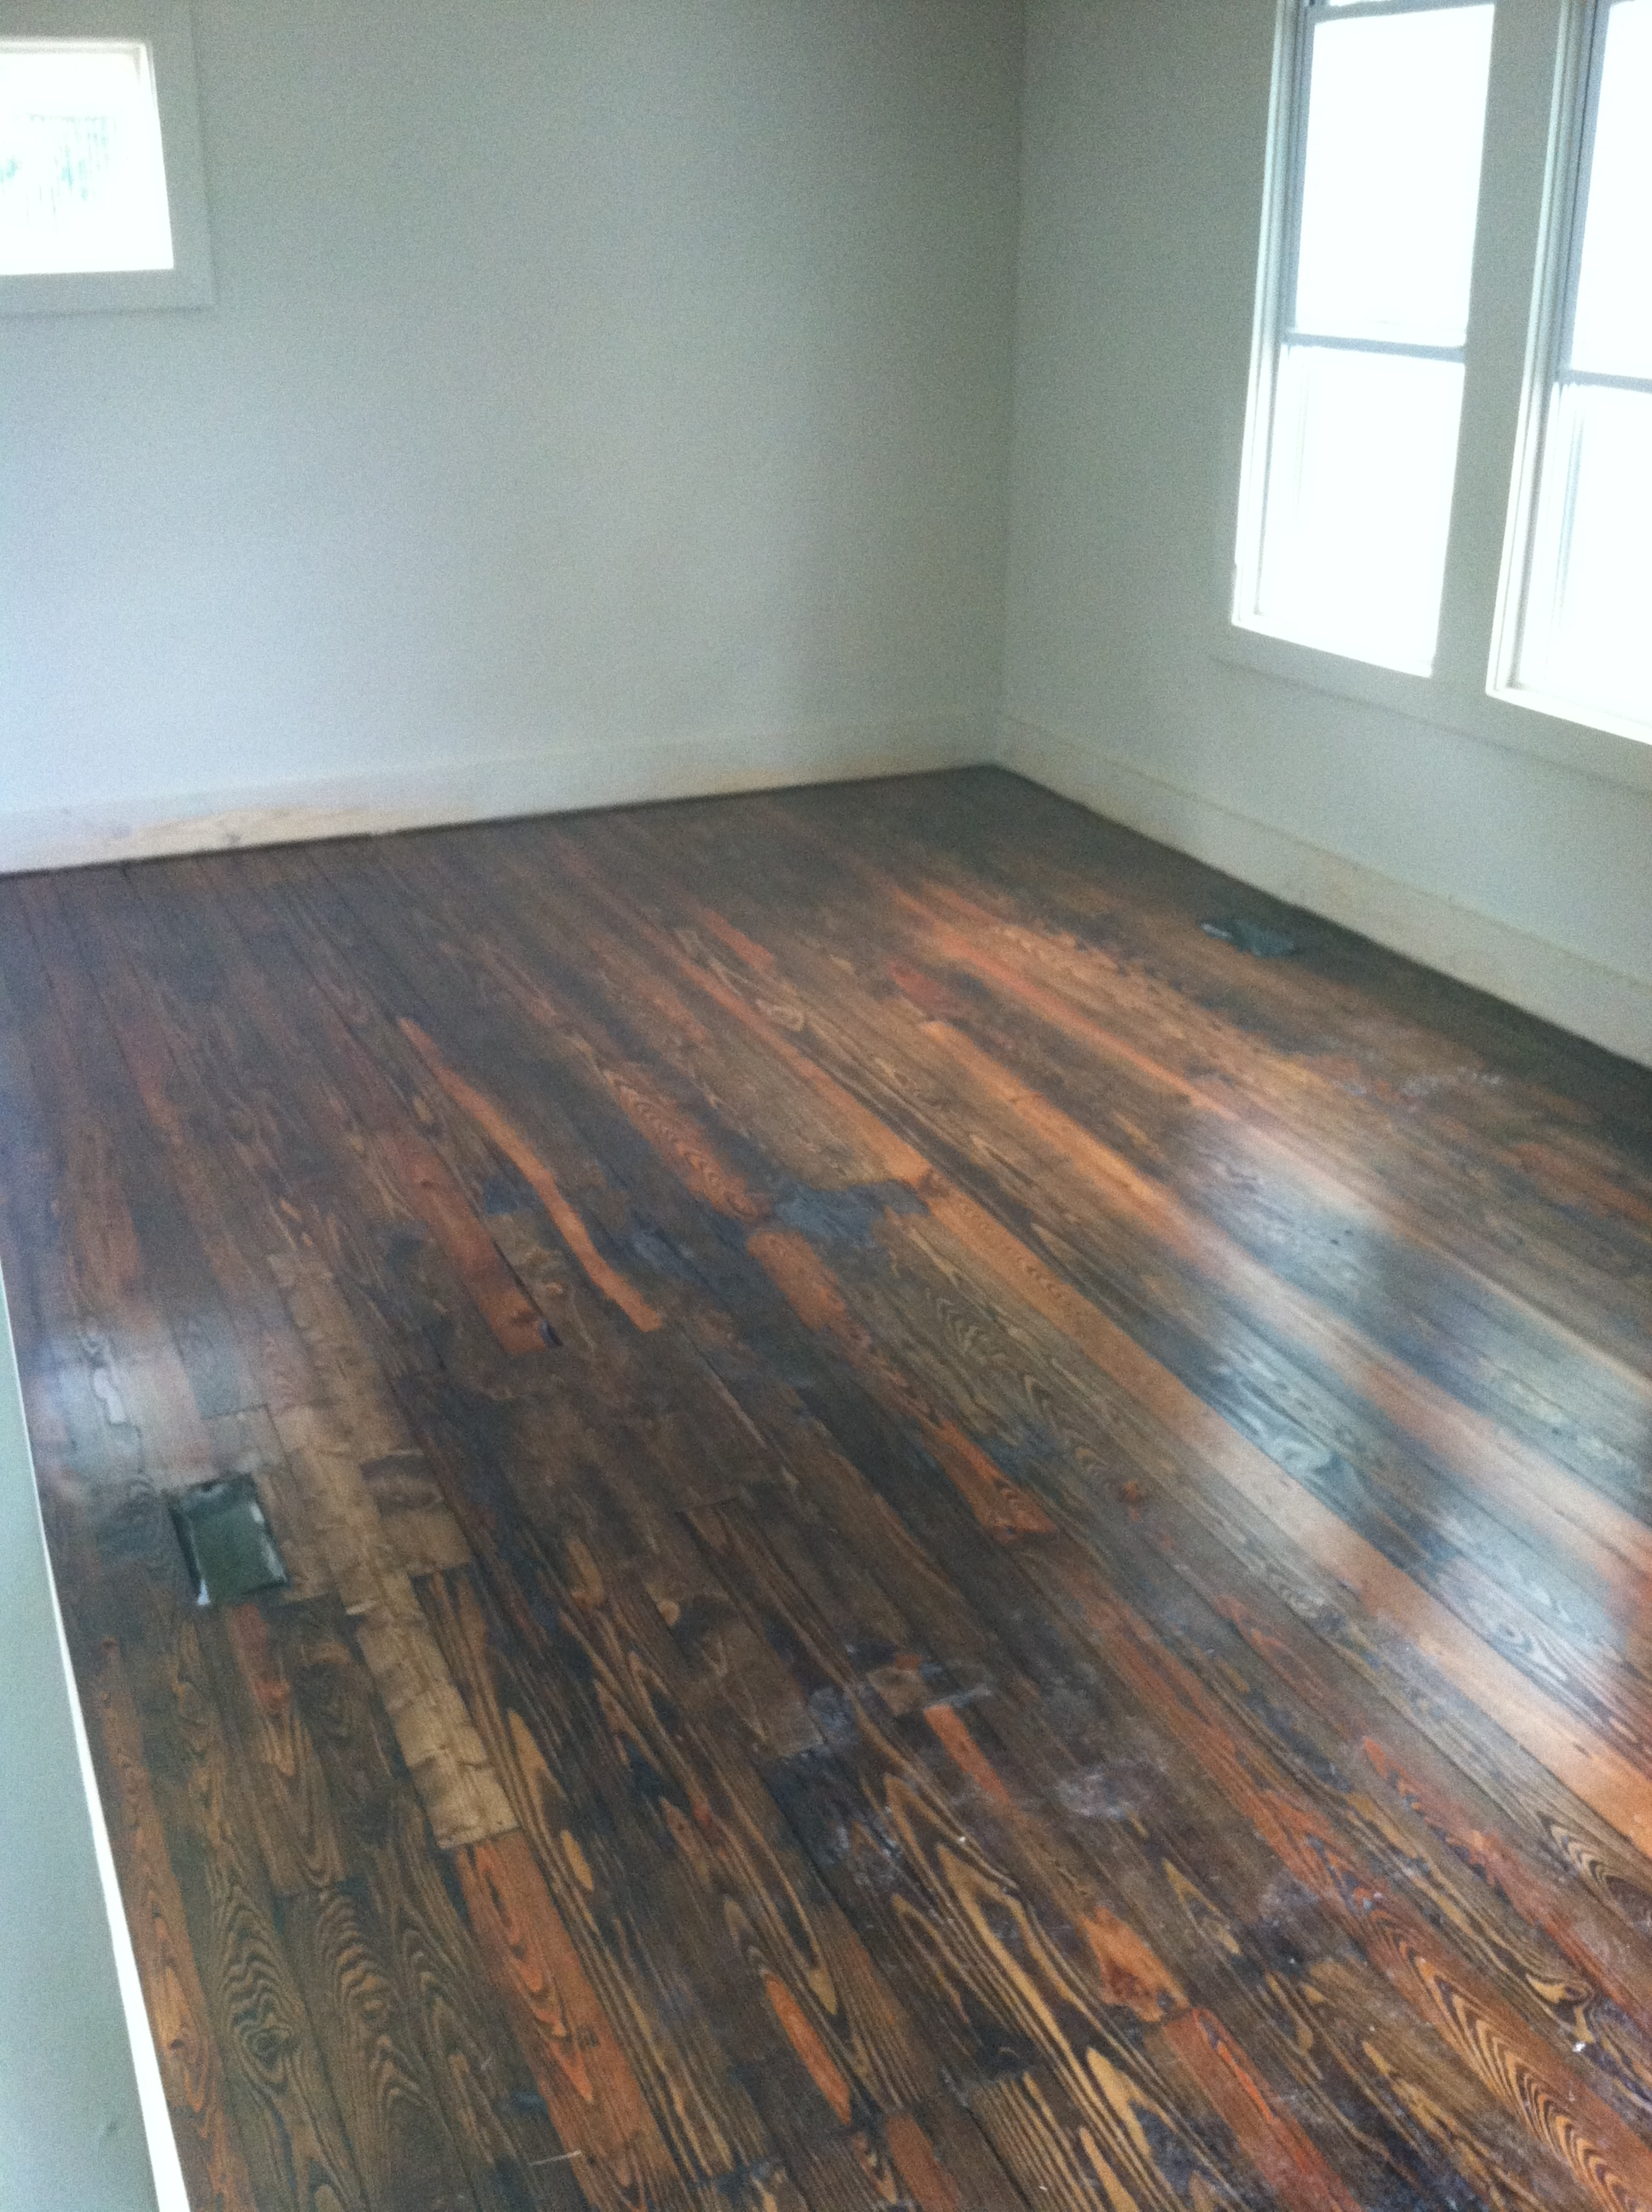 Wood Glue for Hardwood Flooring